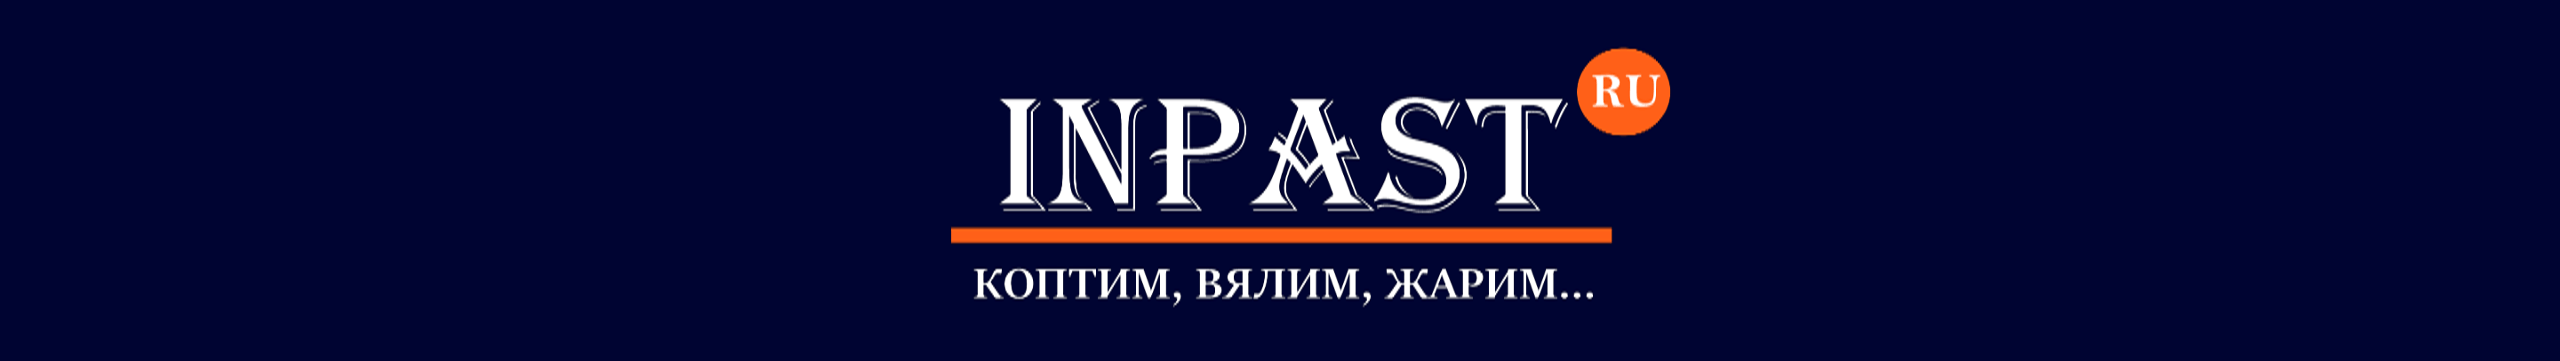 InPast.ru